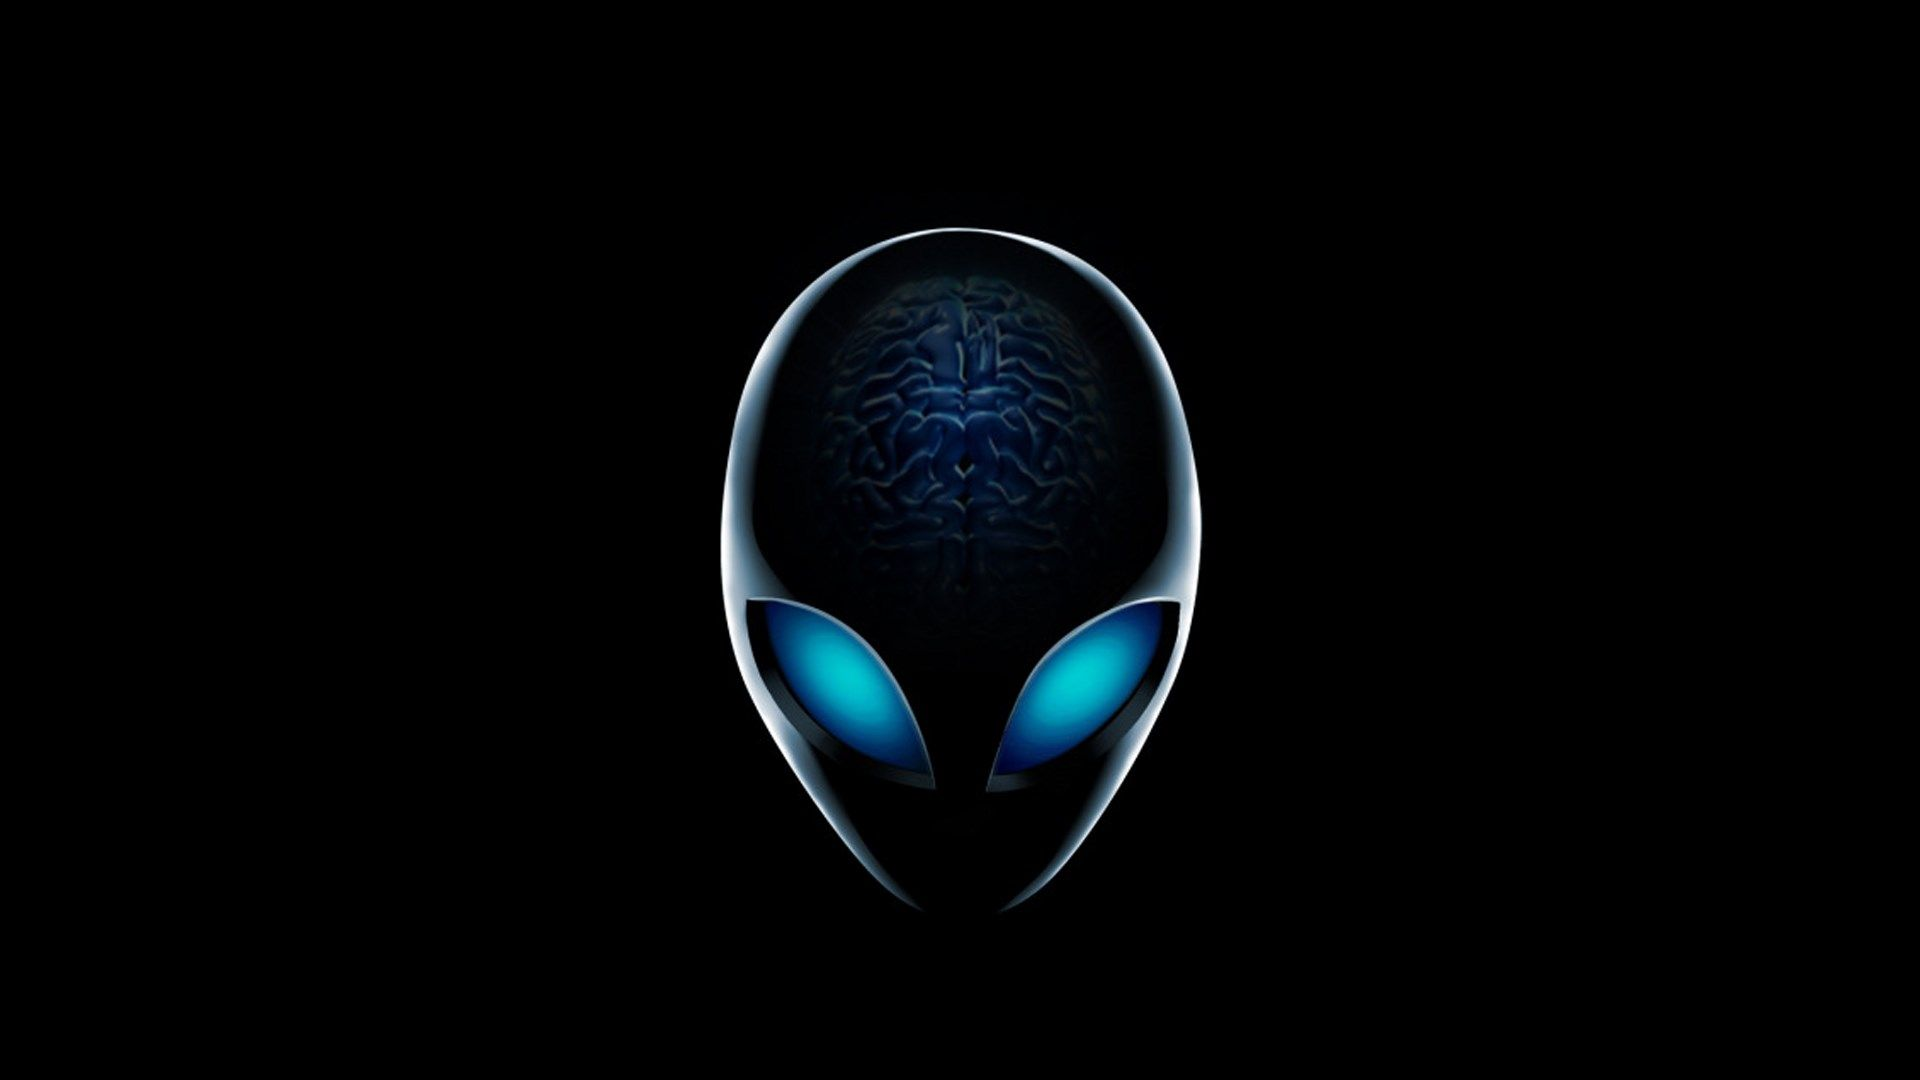 Alienware Wallpaper: Alienware Backround